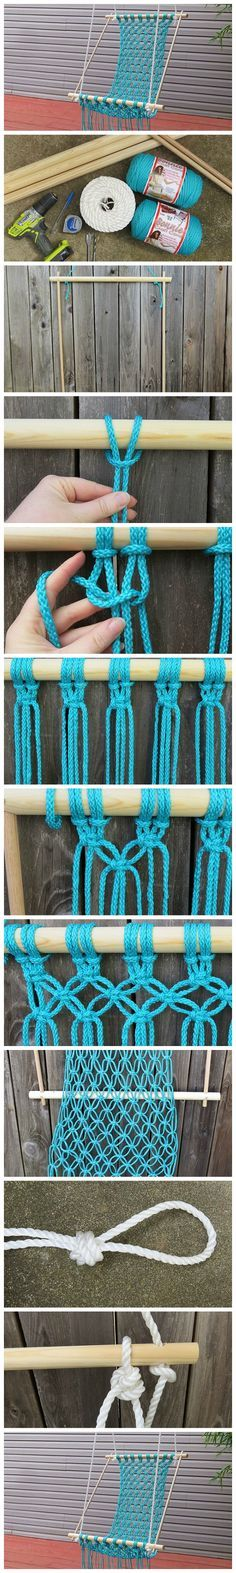 How To Make A Lovely DIY Macrame Hammock                                                                                                                                                      More